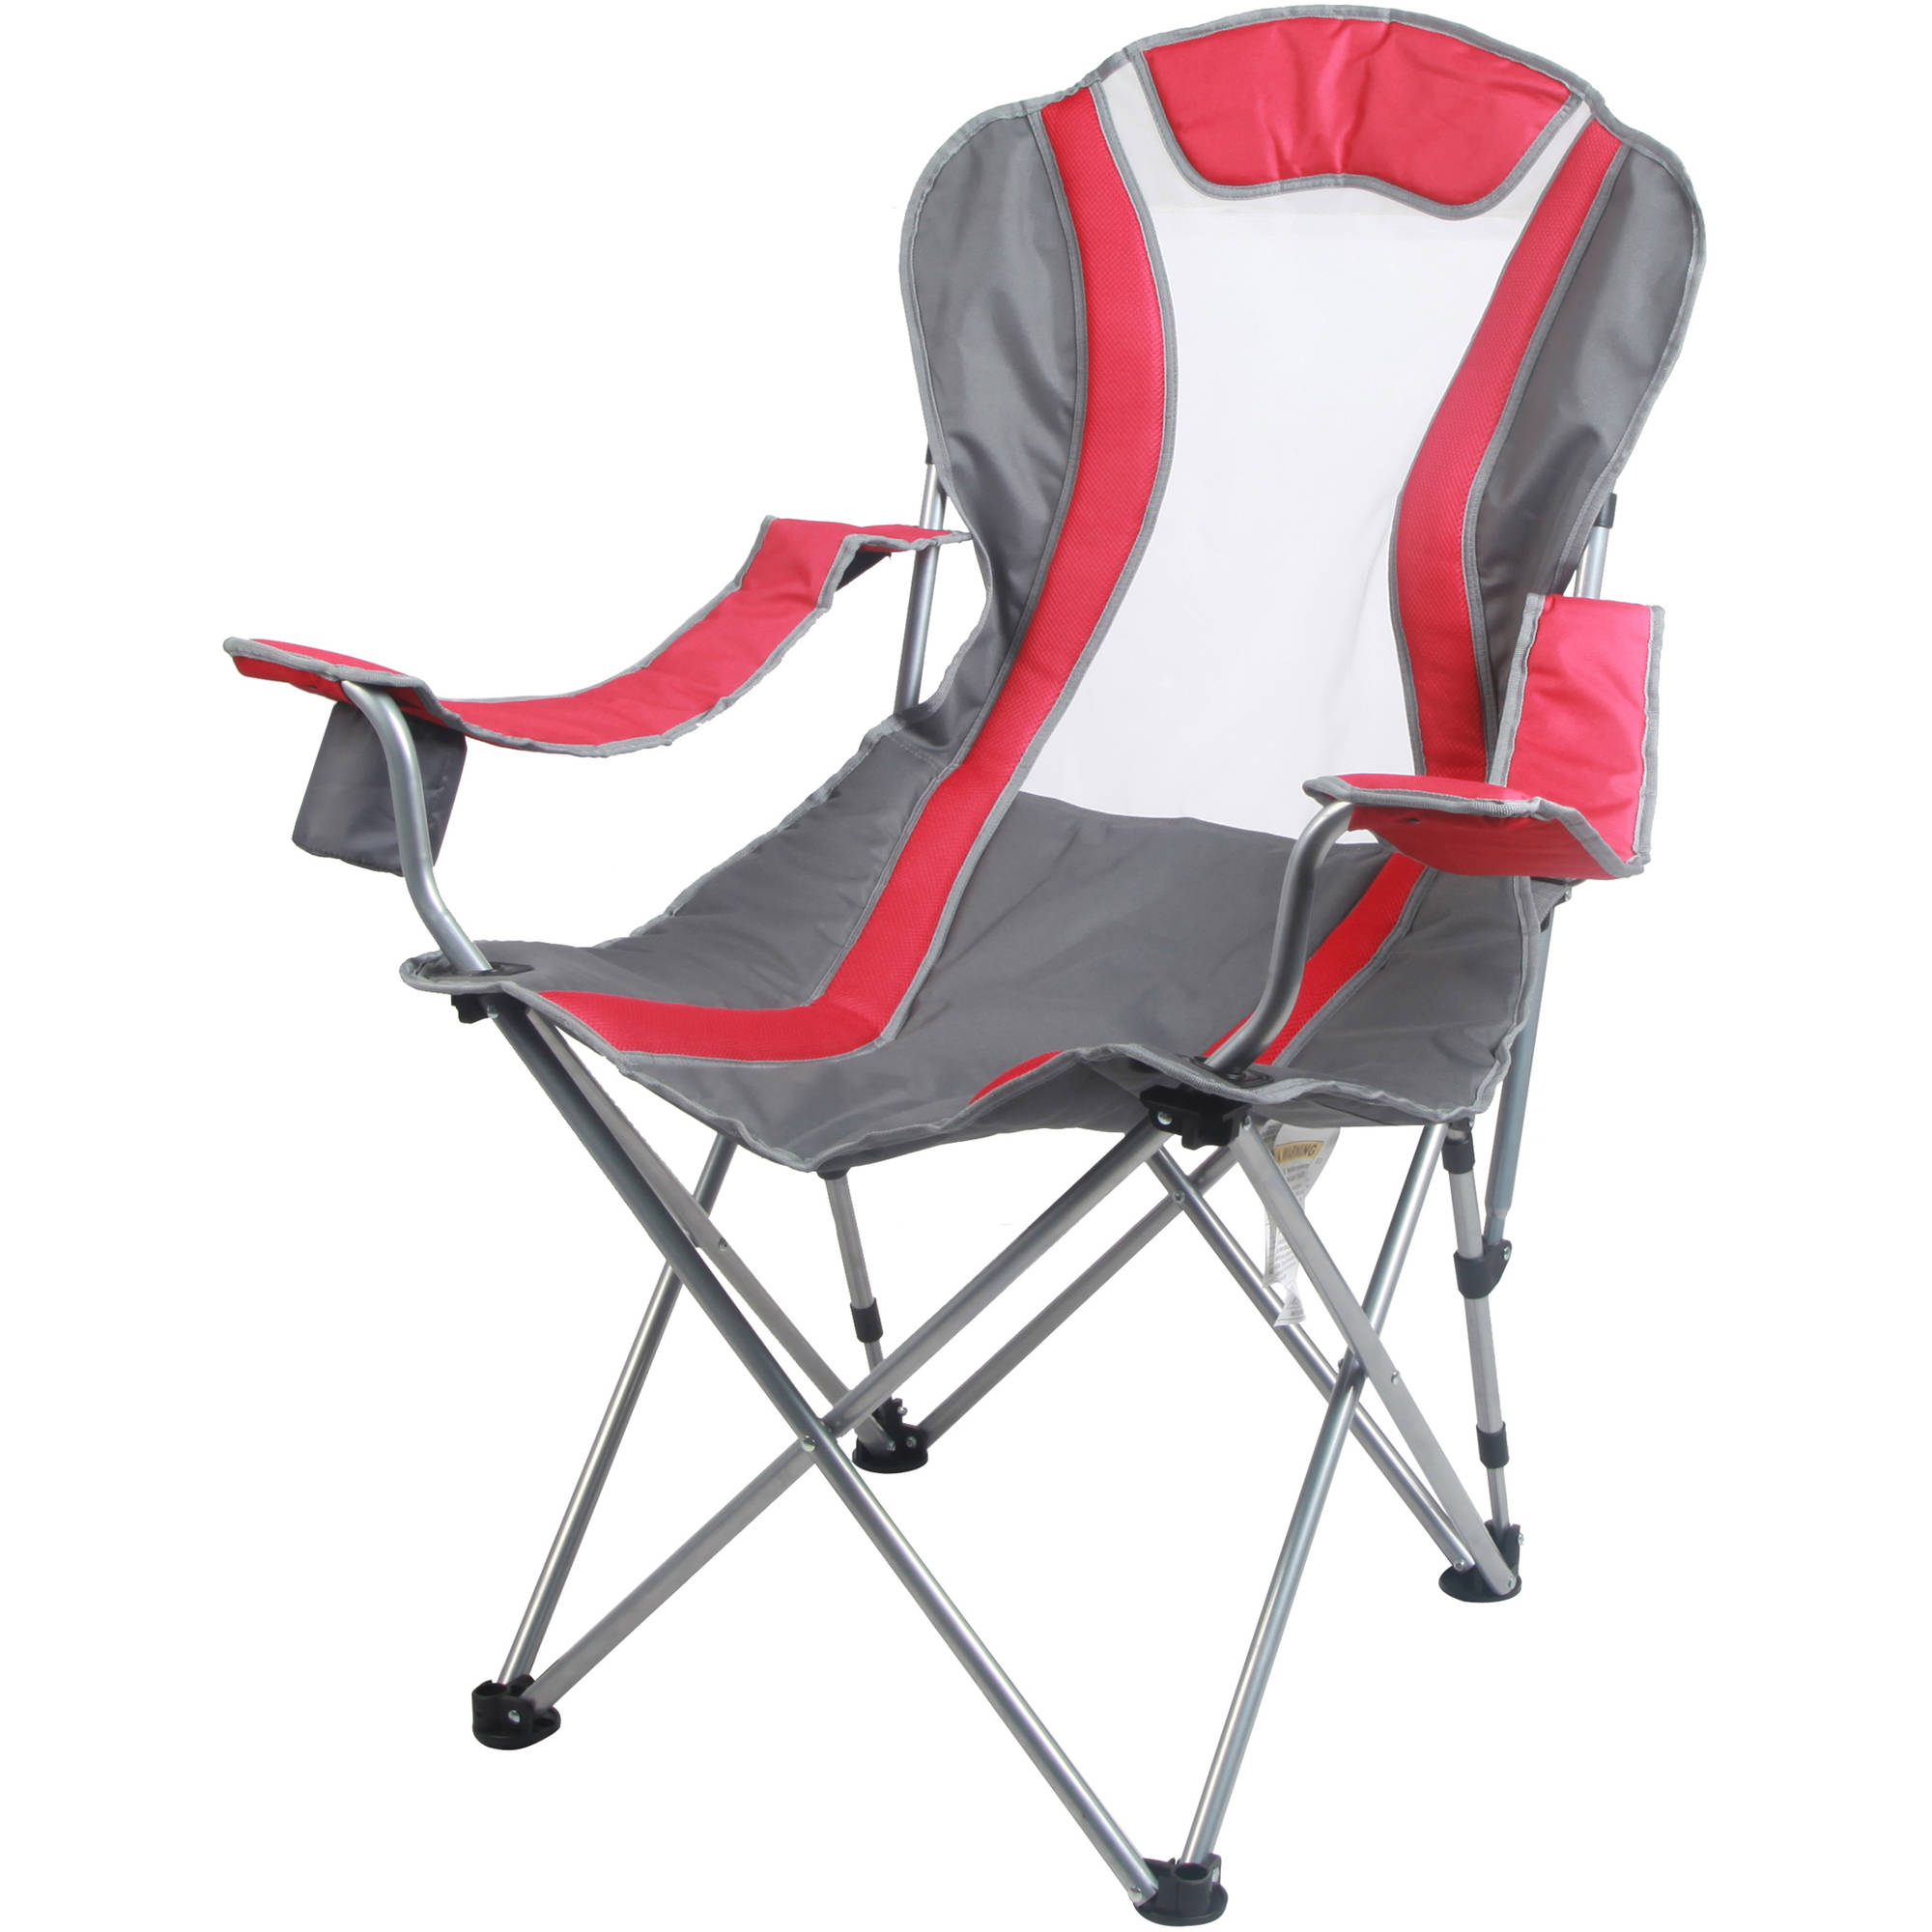 Ozark Trail 2-Position Reclining Chair